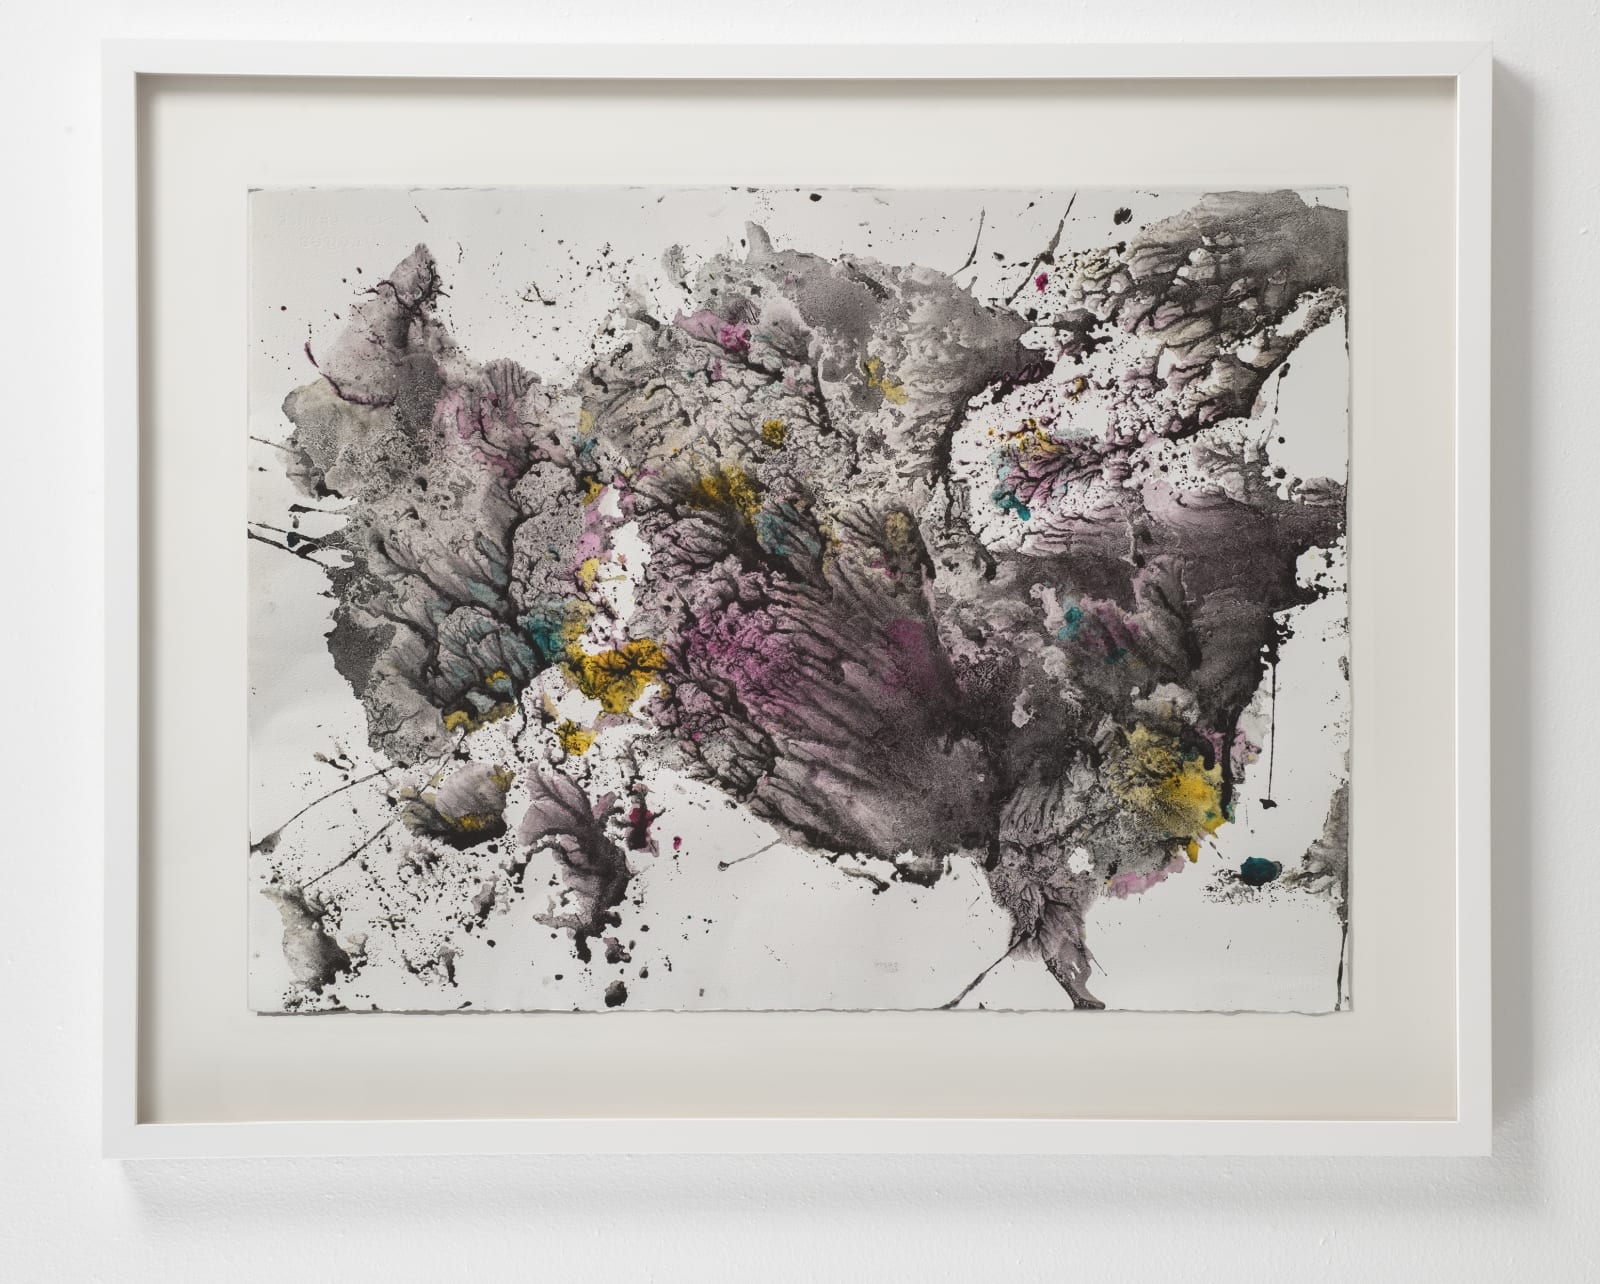 Michele Colburn Pyroclastic Surge, 2020 Gunpowder and watercolors on Arches paper with deckled edges 55.9 x 76.2 cm, 22 x 30 in. (Frame not included) Photo: Lee Stalsworth